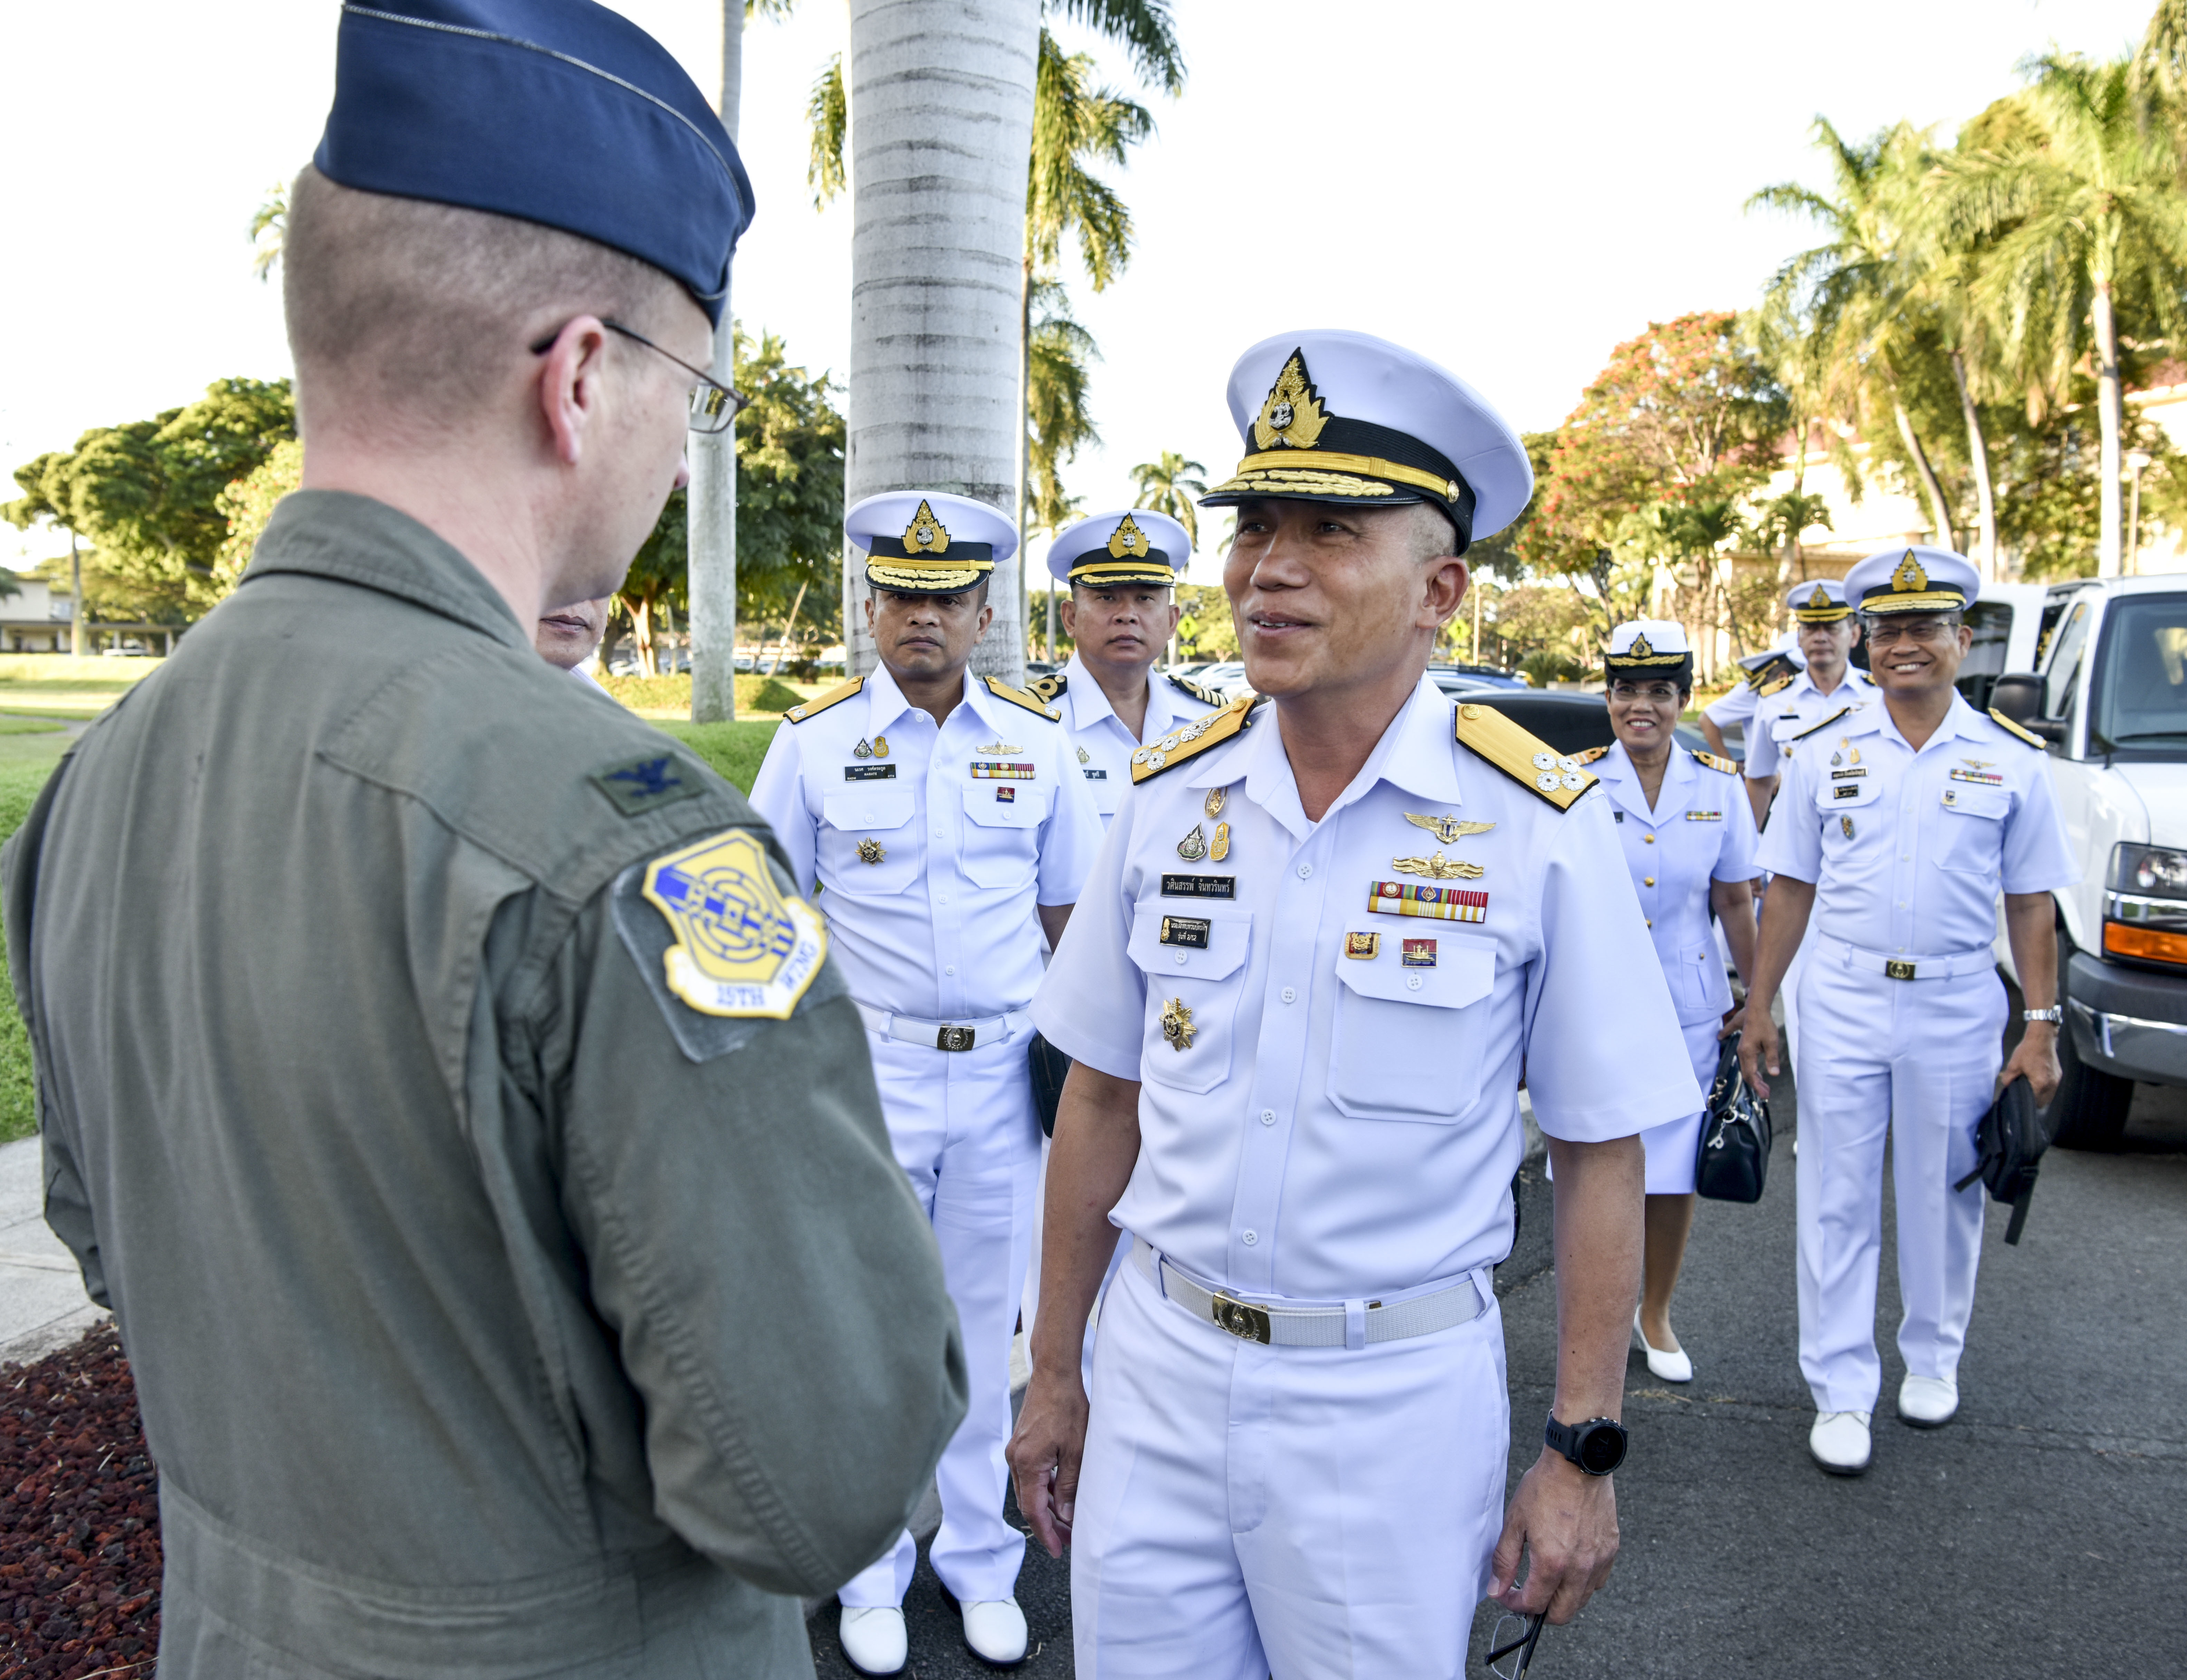 U.S. Air Force Col. W. Halsey Burks, 15th Wing commander, meets Royal Thailand Navy Adm. Vasinsan Chantavarian, Senior Advisor to the Royal Thailand Navy Commander-in-Chief, outside of the wing headquarters building on Joint Base Pearl Harbor-Hickam, Hawaii, Feb. 4, 2020. The United States and Thailand established relations in 1818 and signed a Treaty of Amity and Commerce in 1833, formalizing diplomatic relations. (U.S. Air Force photo by Tech Sgt. Anthony Nelson Jr.)